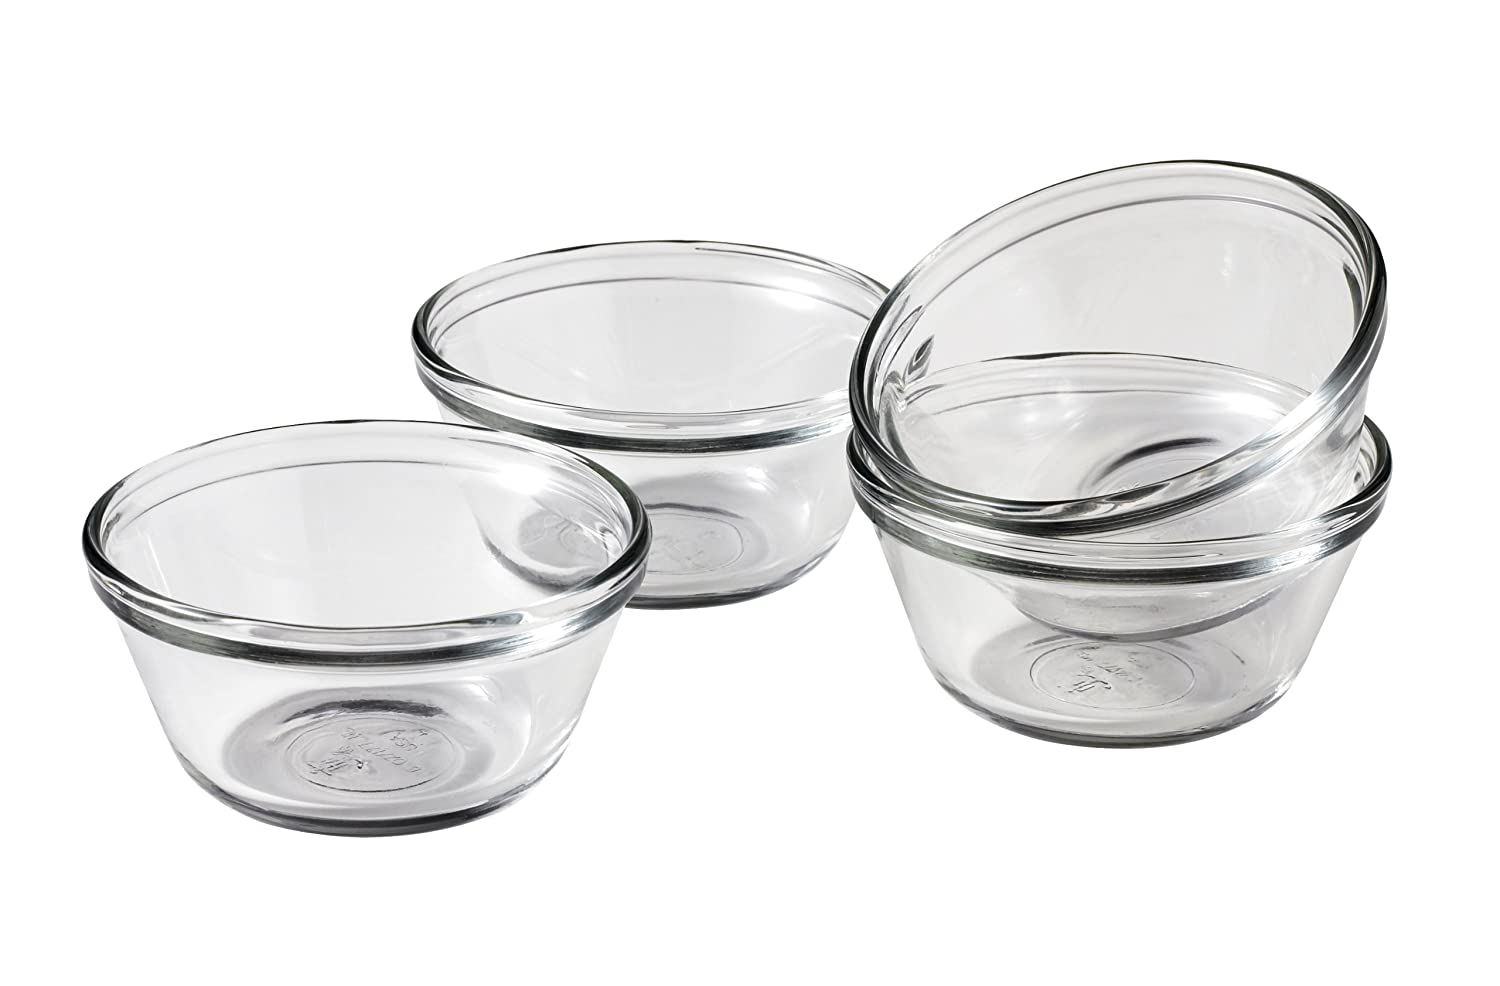 Anchor Hocking 6-Ounce Custard Cups, Set of 4, Standard Packaging 81672L11